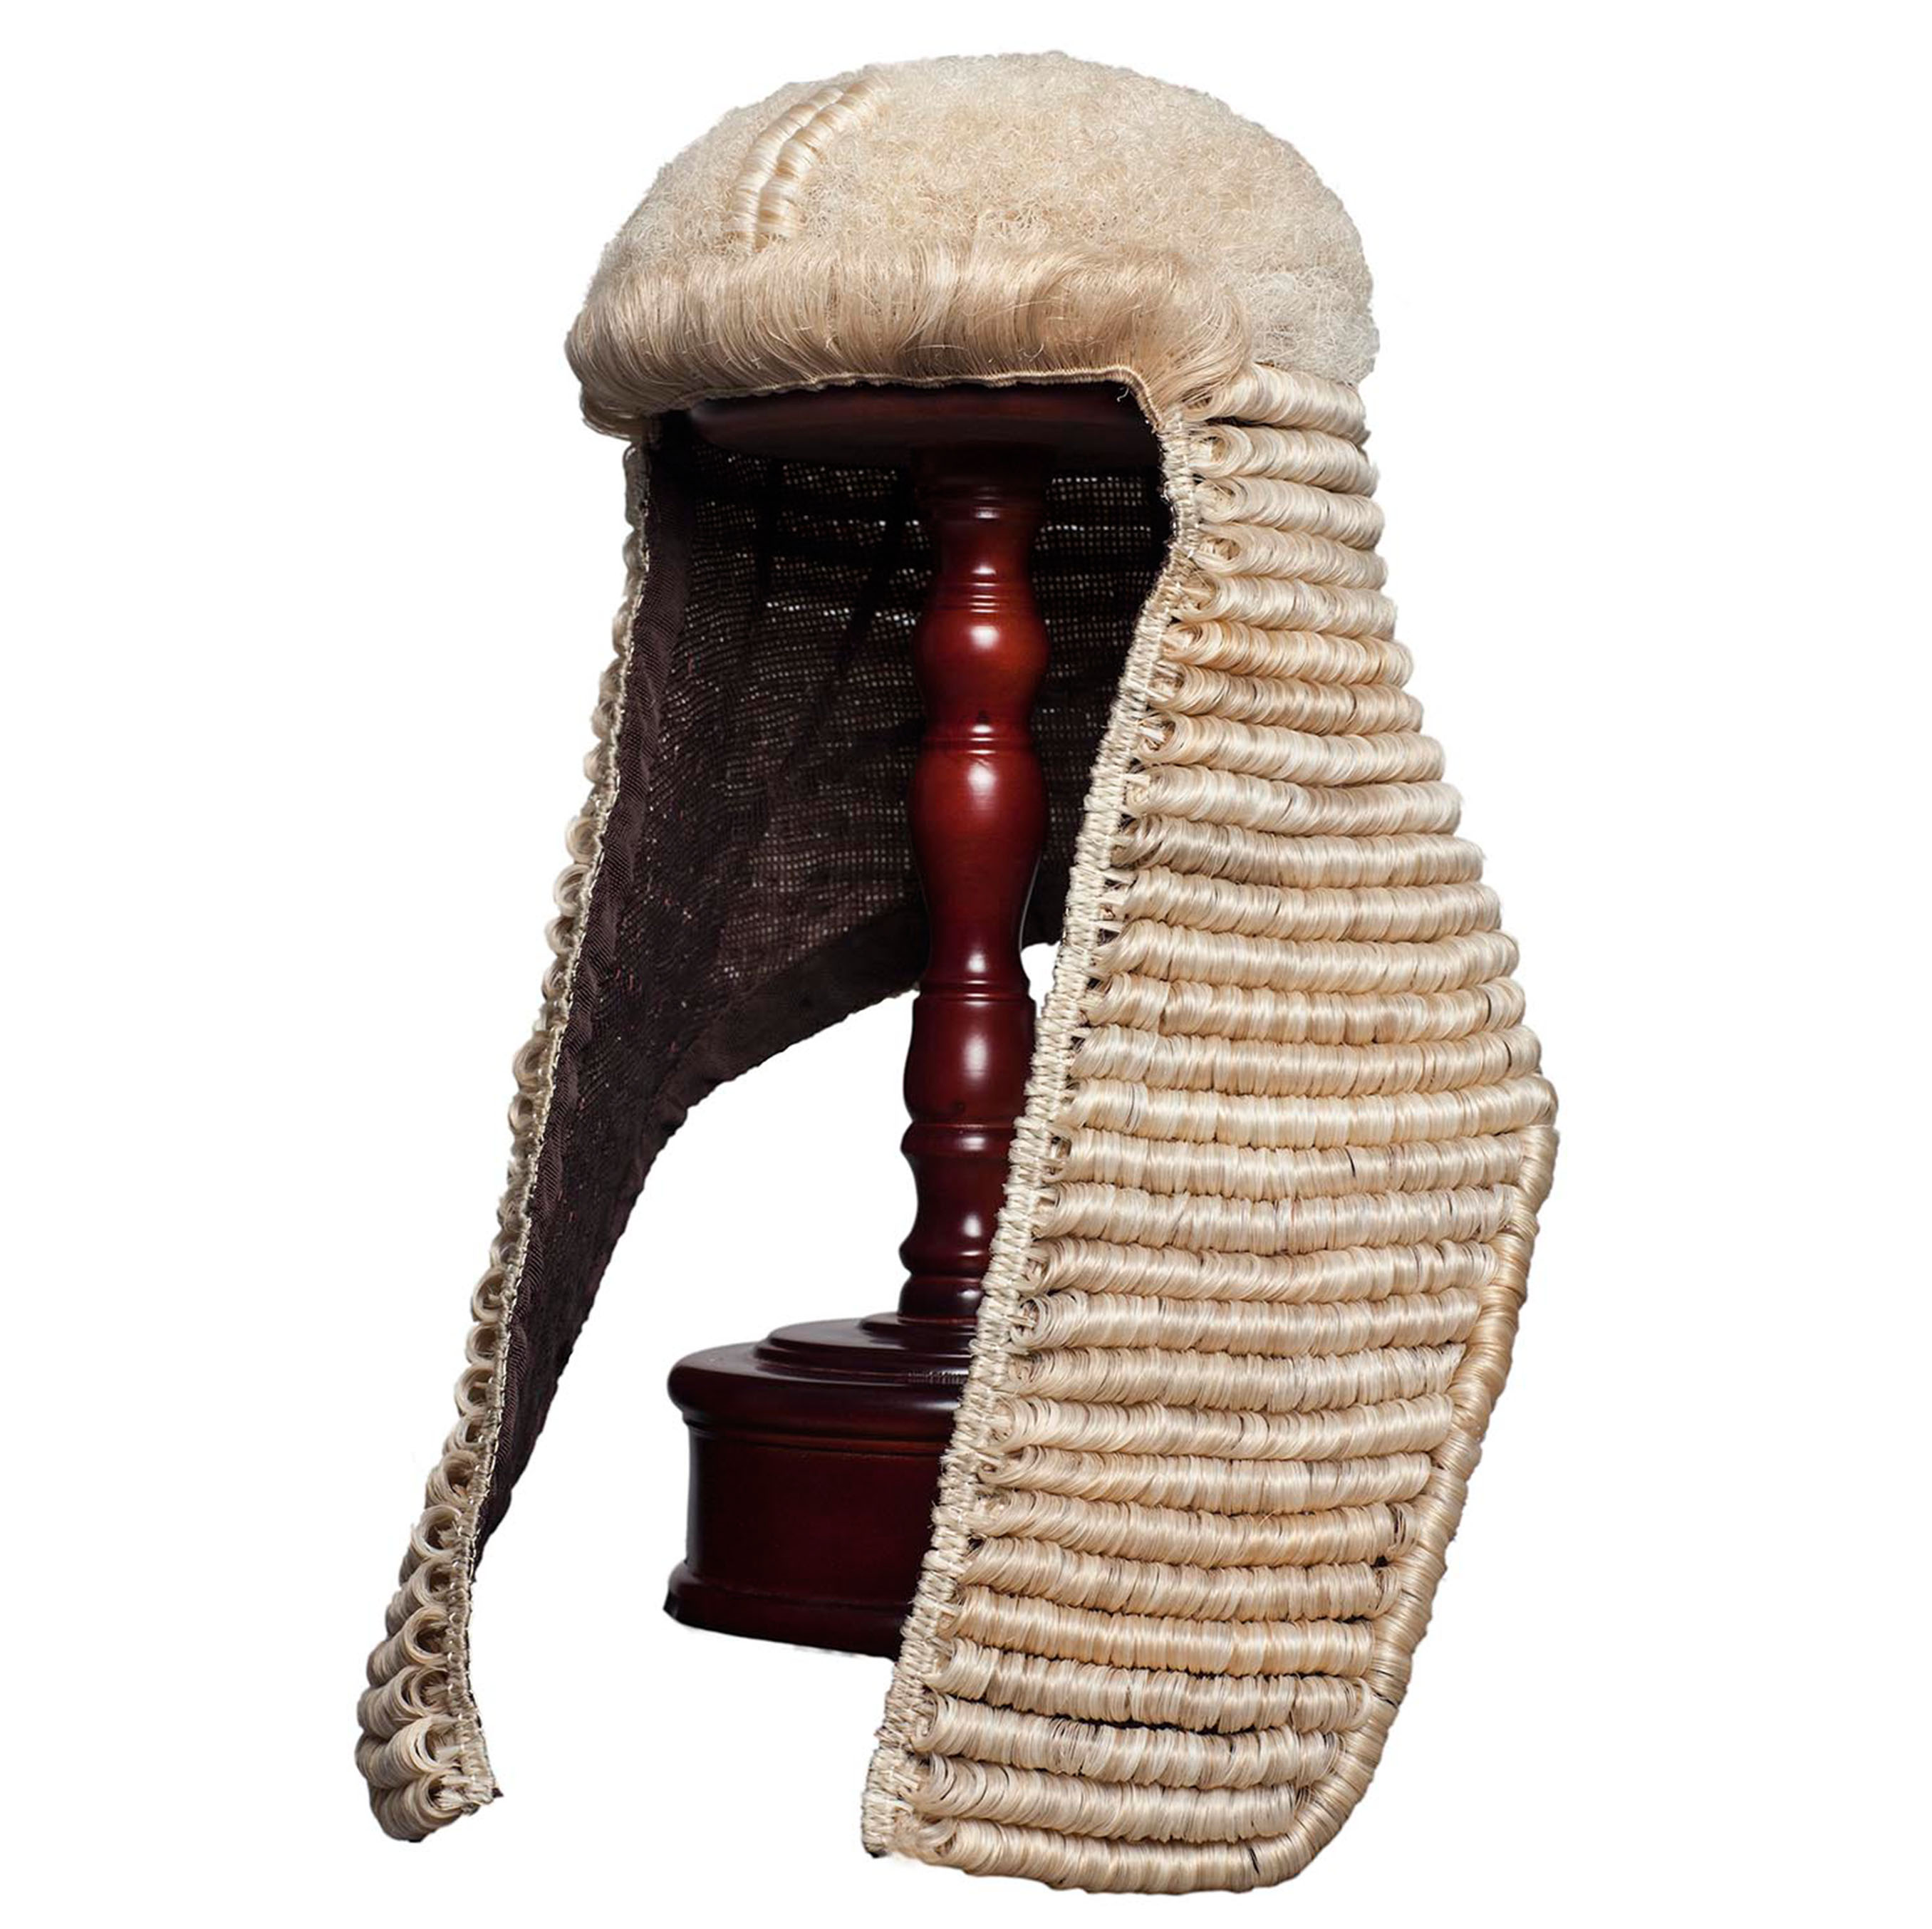 Chancery Wigs - Quality Barristers Wigs and Gowns